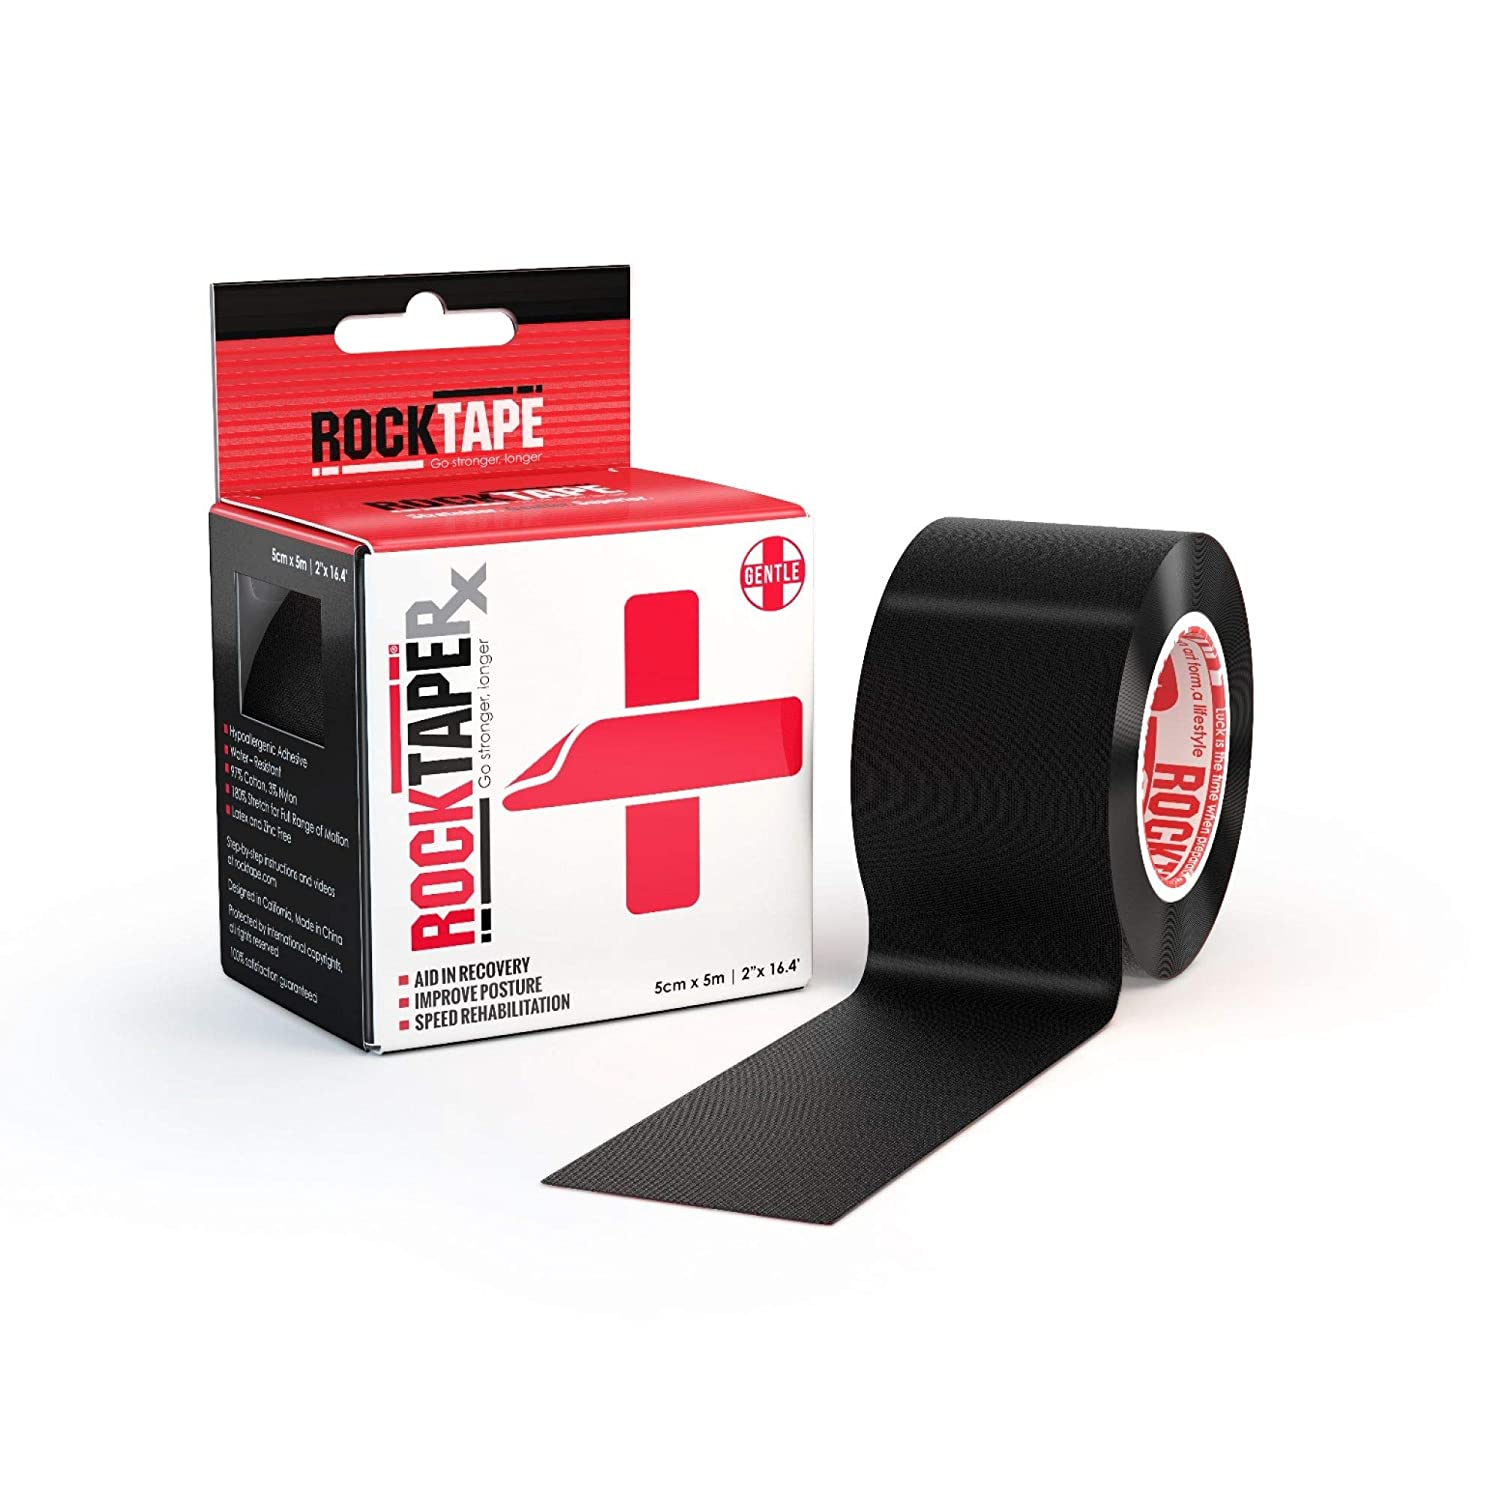 RockTape RX Recovery Tape